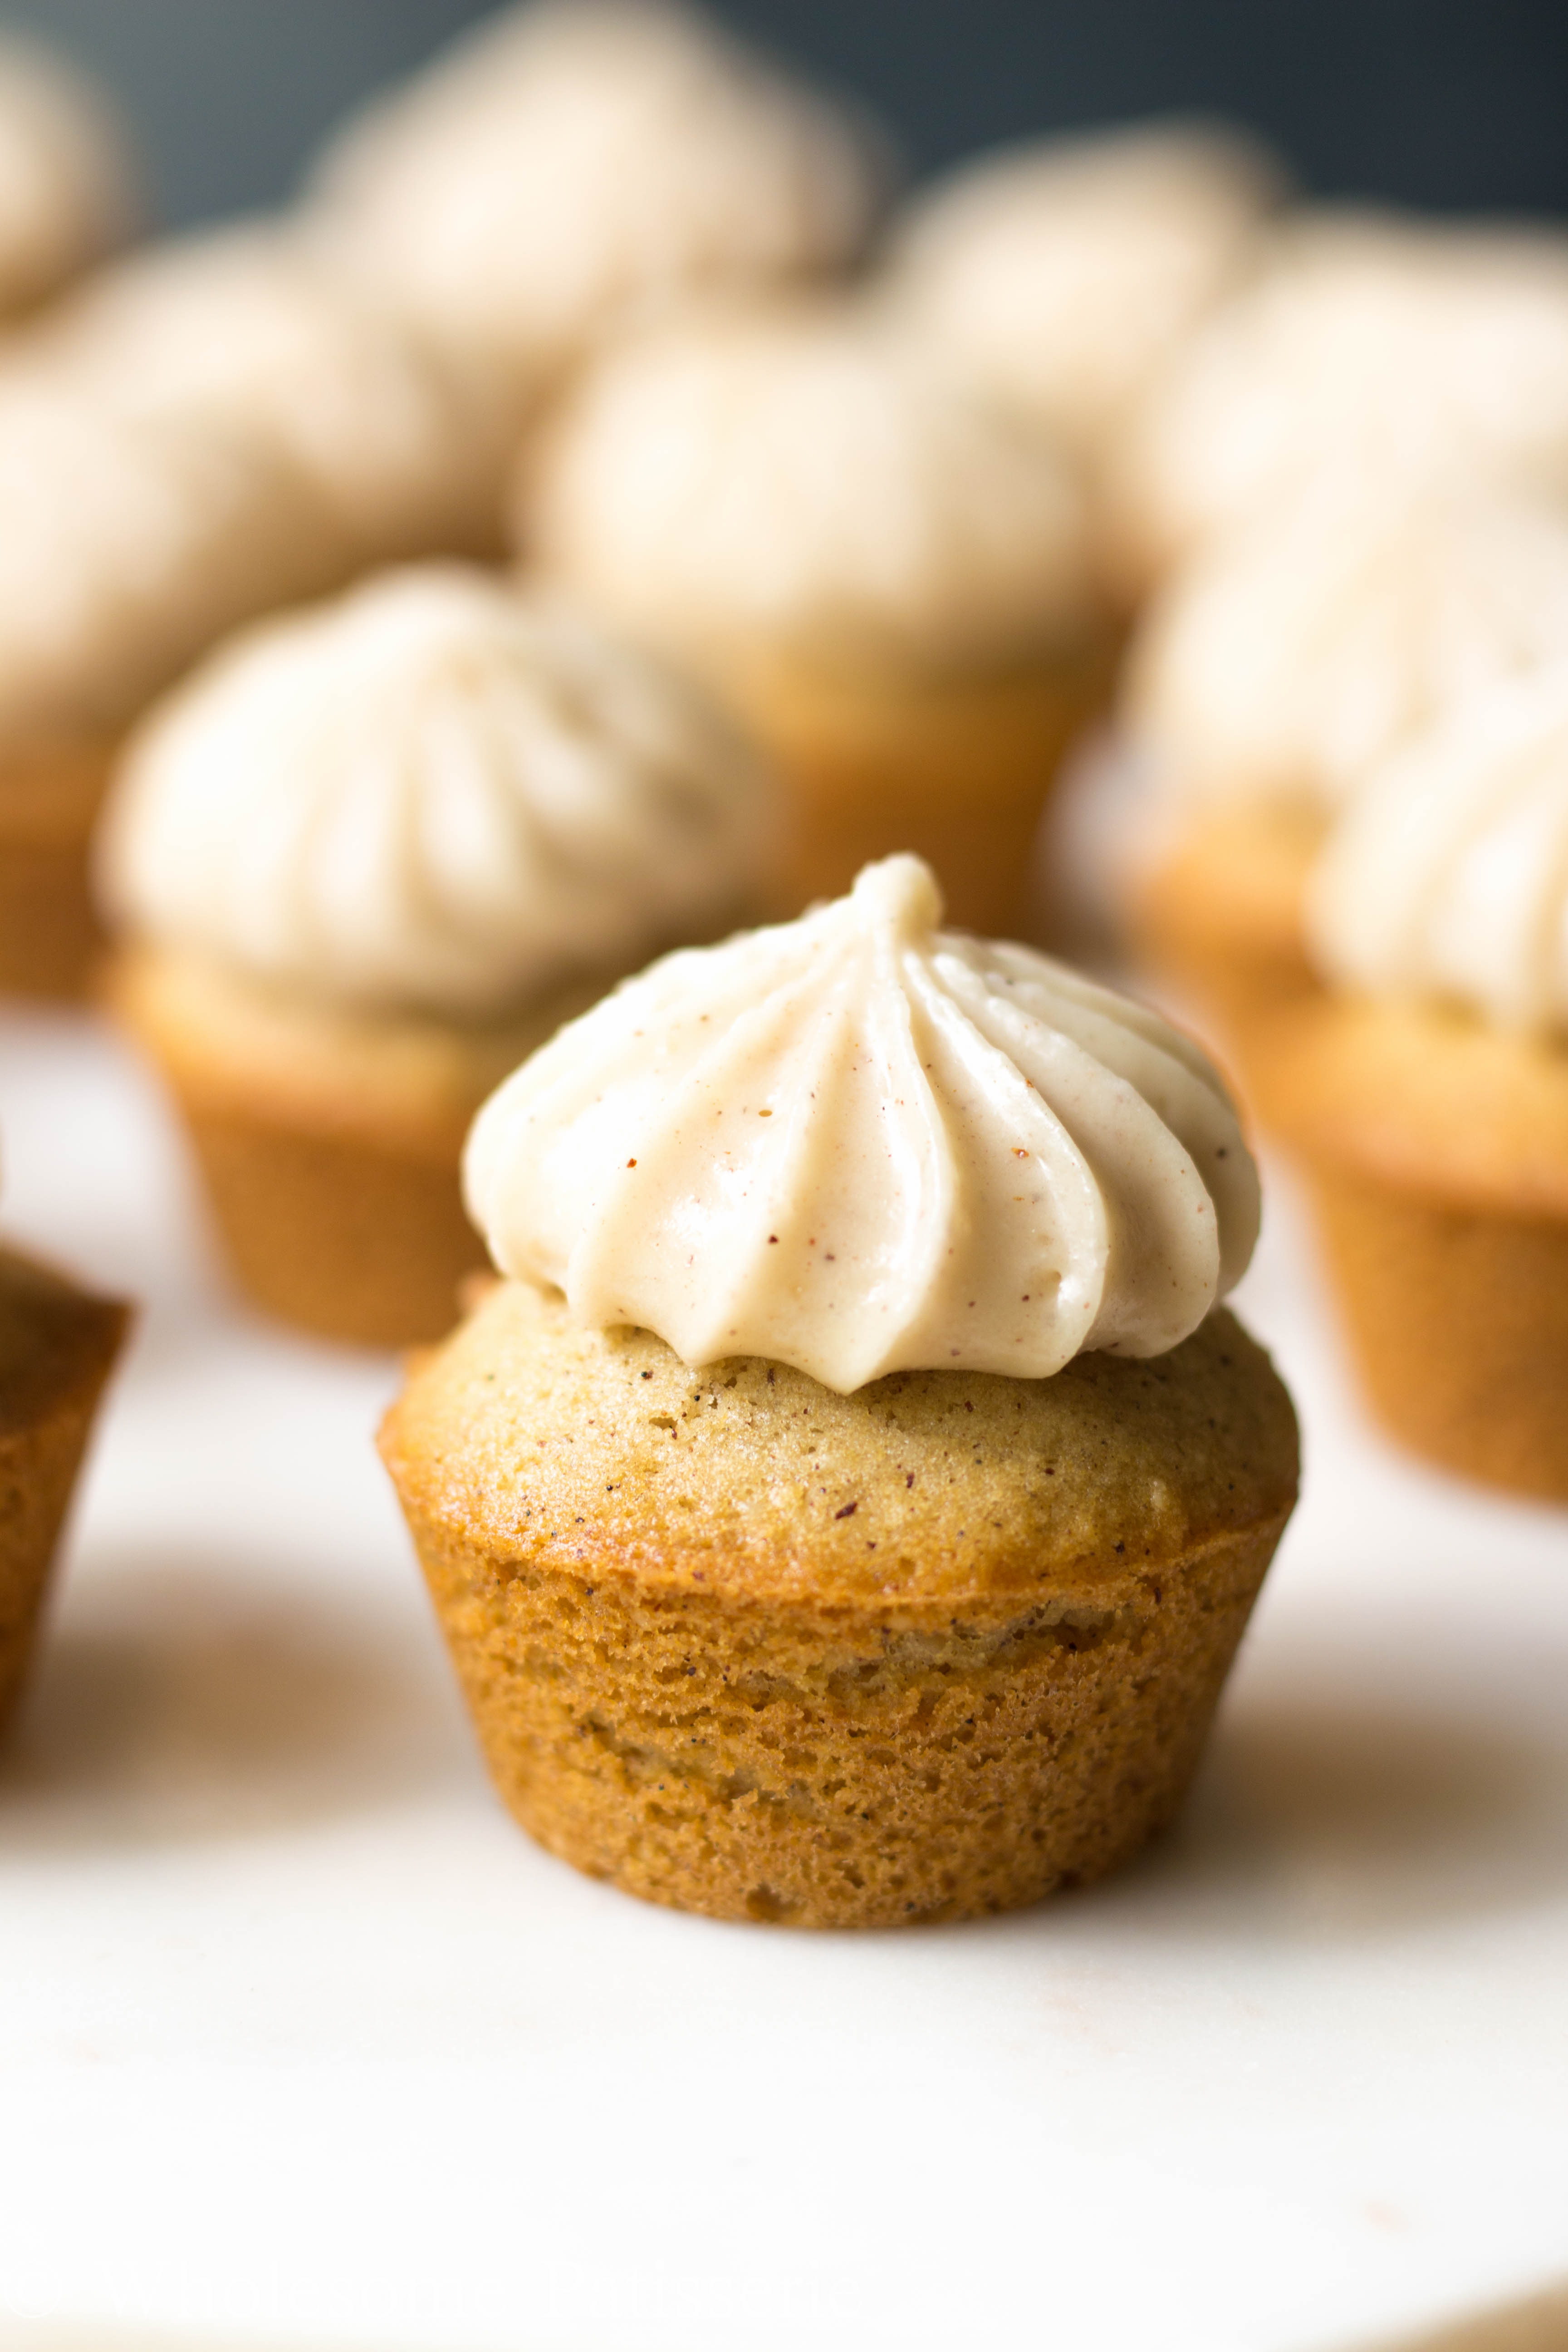 GLUTEN-FREE-cupcake-recipe-honey-cupcakes-vegetarian-DELICIOUS-easy-yummy-cupcakes-cinnamon-mini-cupcakes-wholesome-patisserie-cake